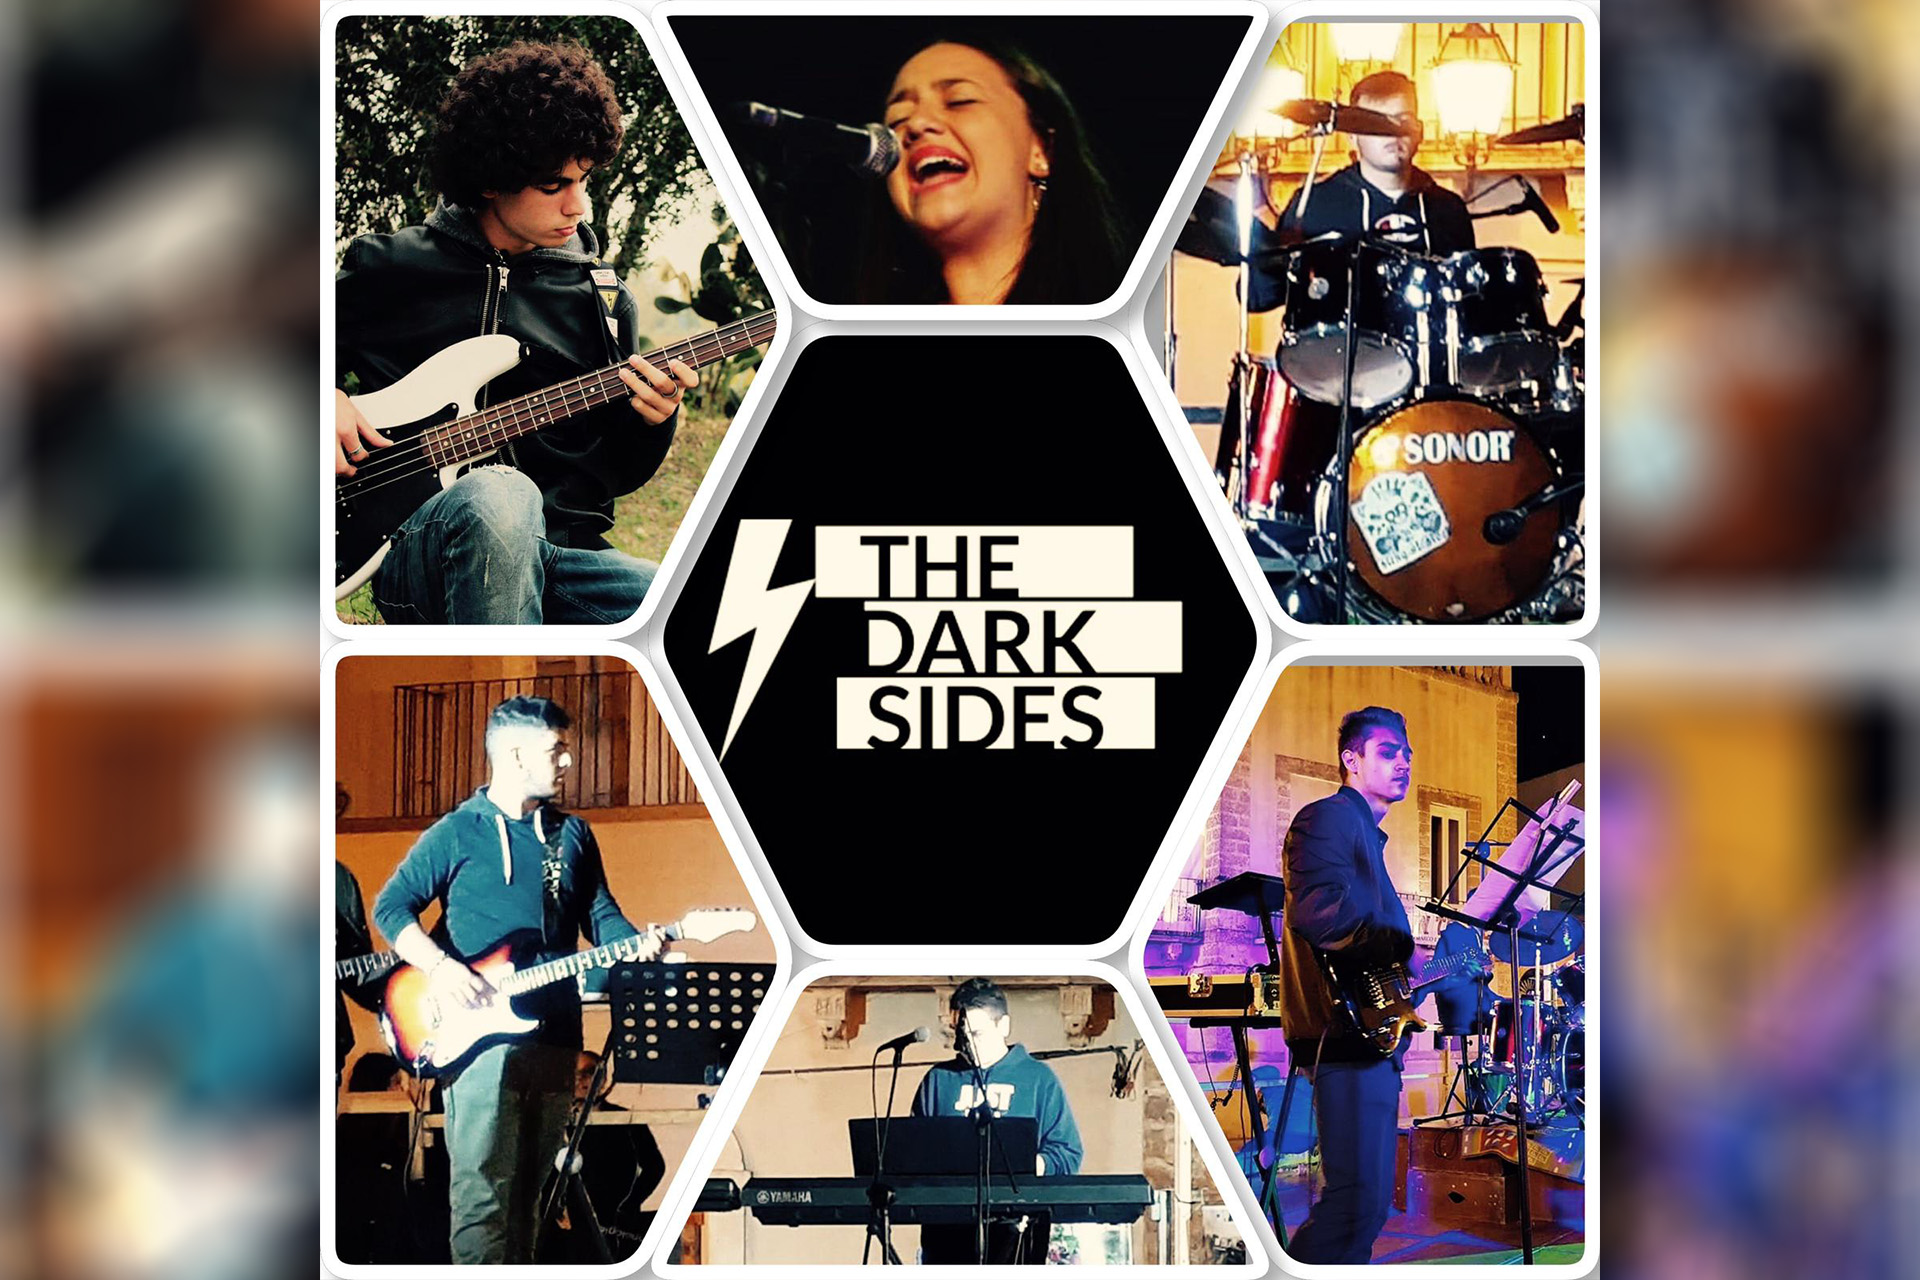 THE DARK SIDES IN CONCERTO